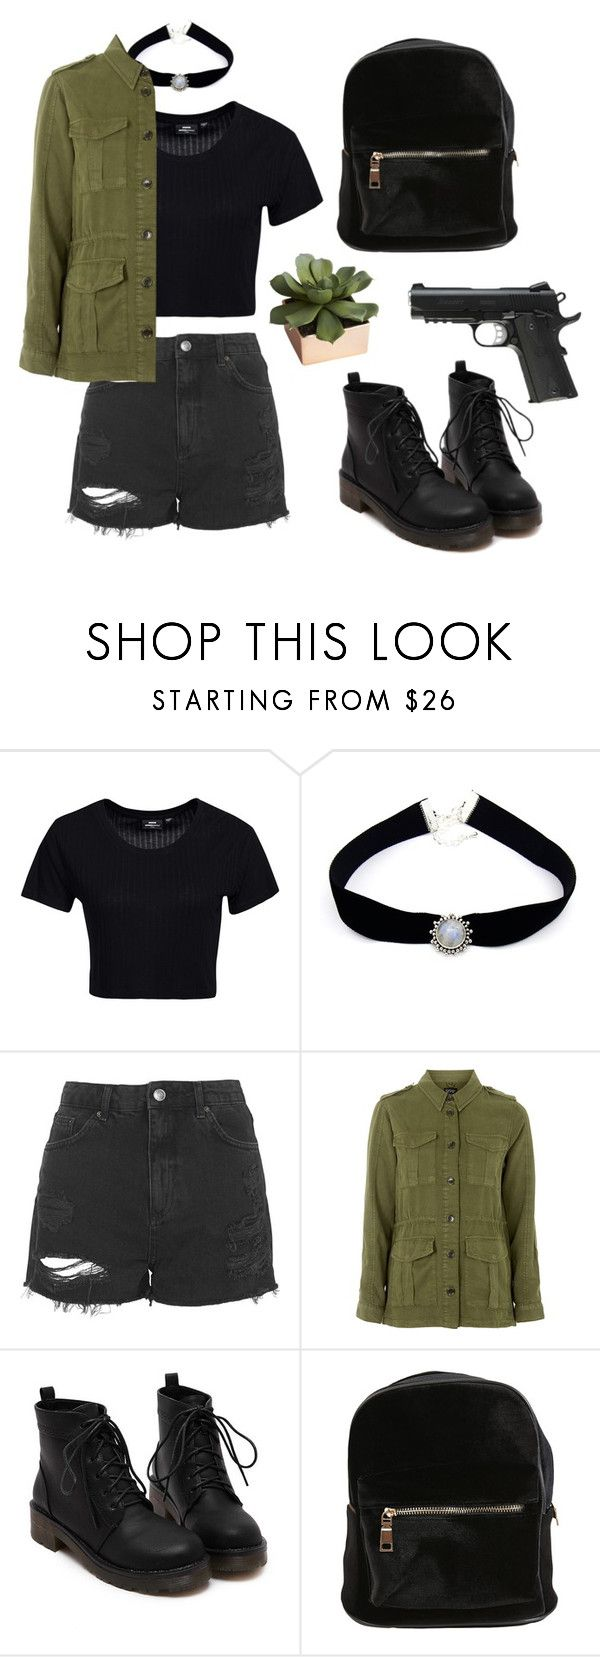 """Mathilda - Léon, the professional"" by am-saraiva ❤ liked on Polyvore featuring Dr. Denim, Sirius, Topshop and CB2"